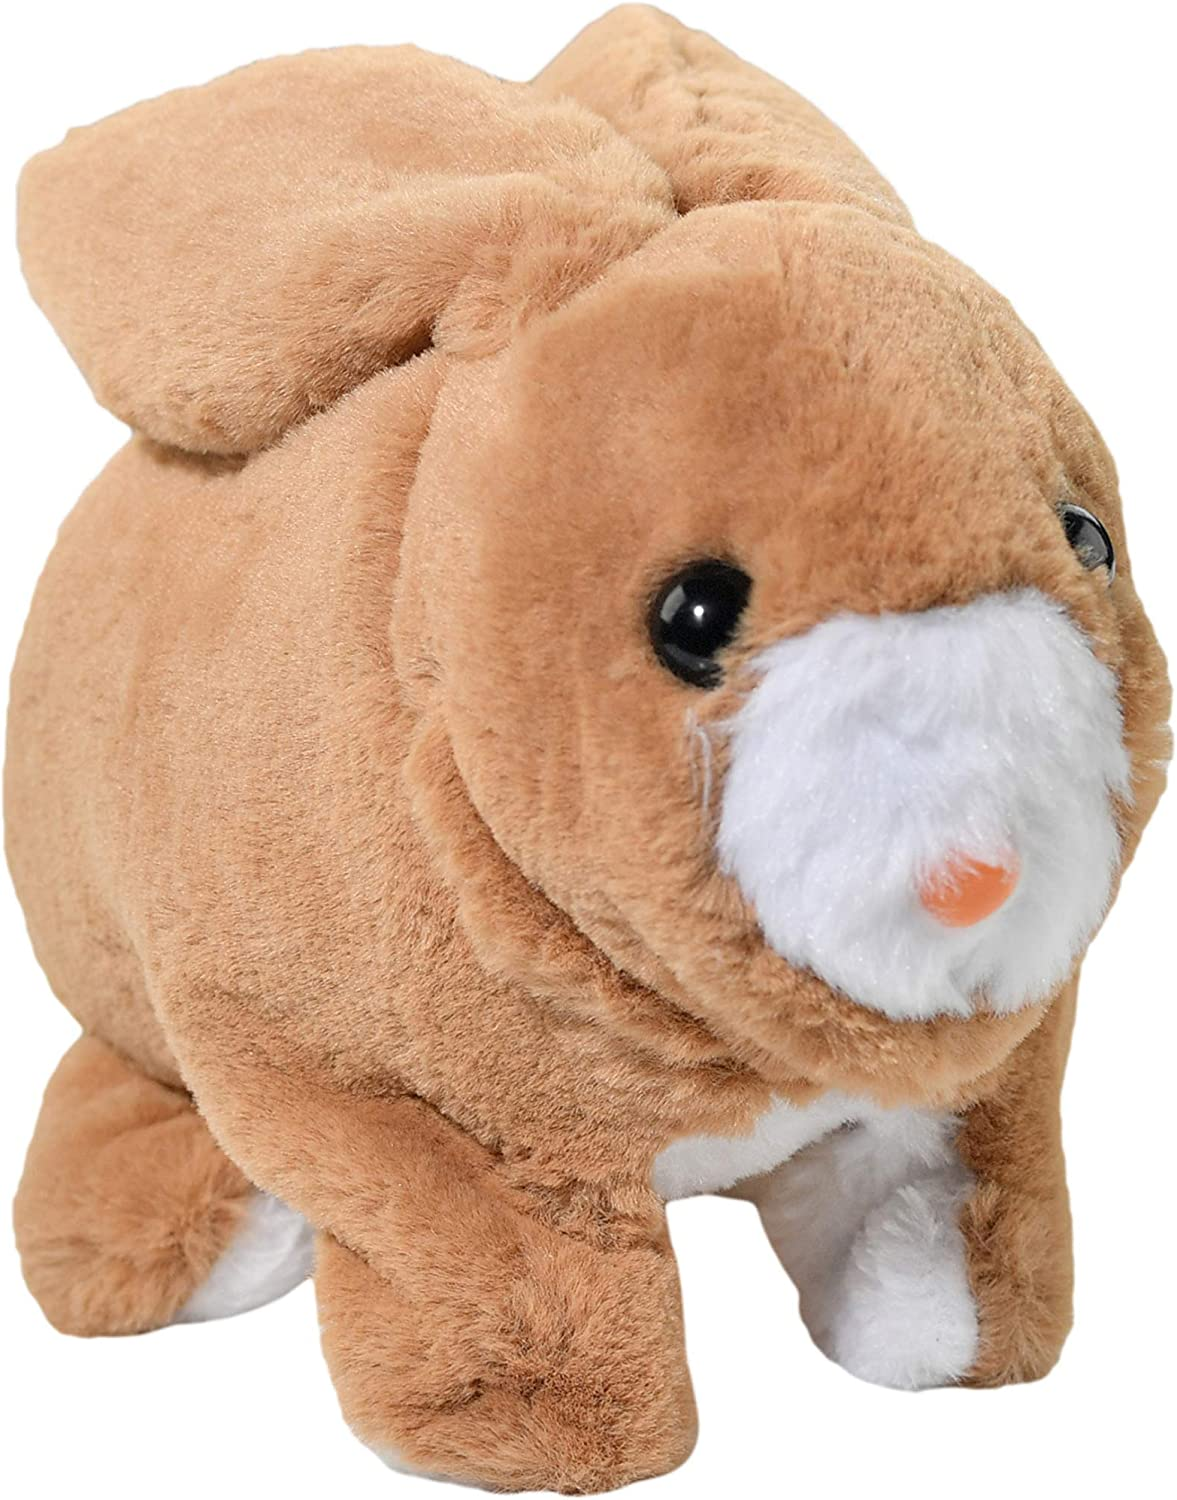 Home-X Brown Rabbit, Electric Rabbit Toy, Interactive Pets, Stuffed Animals